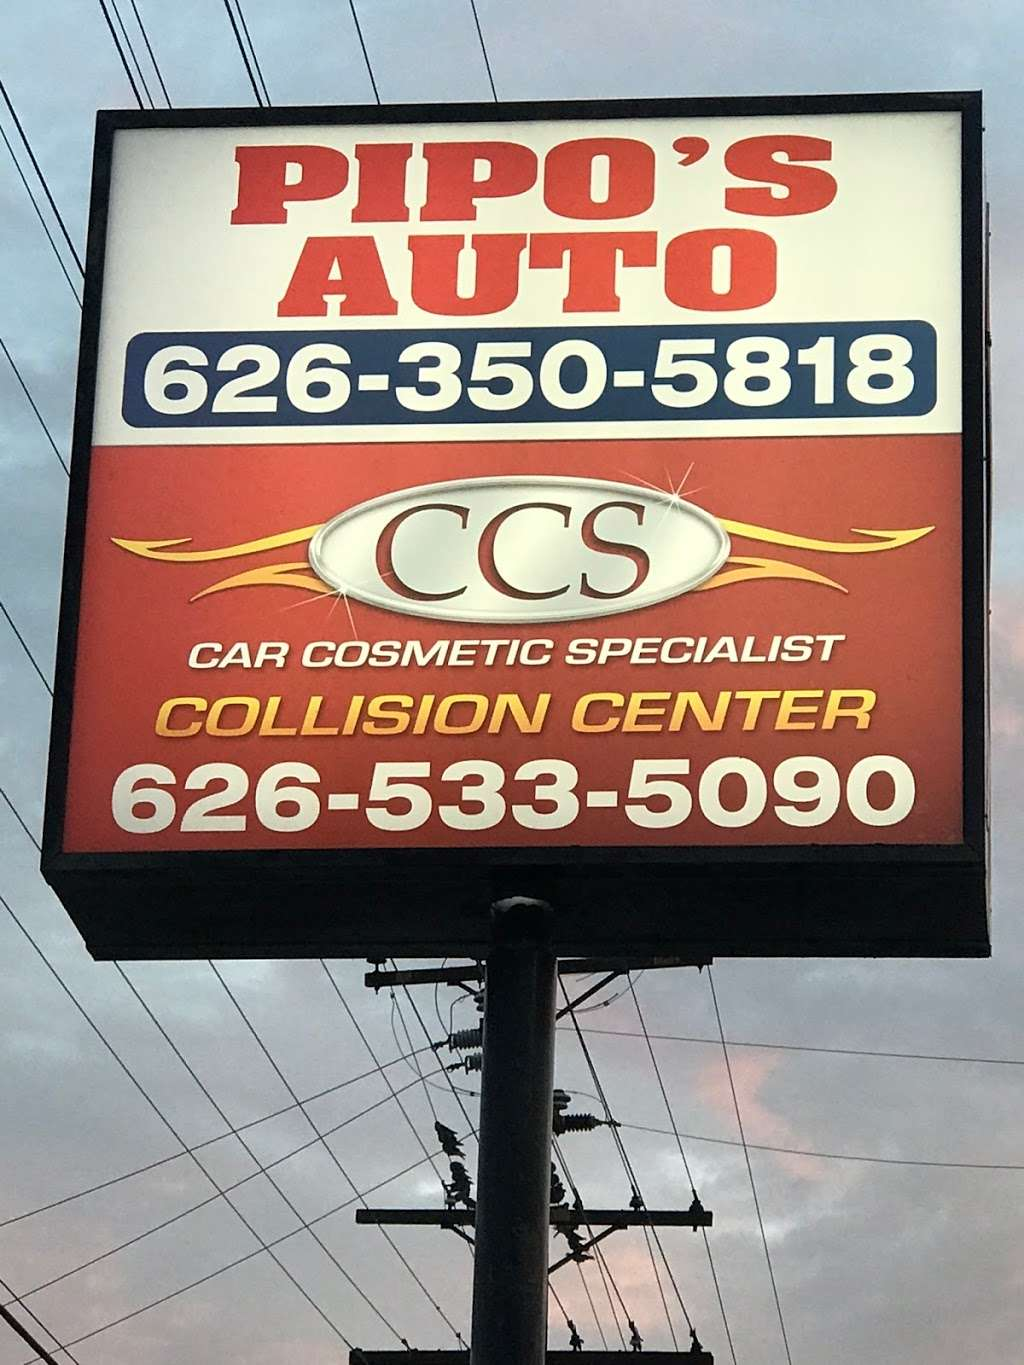 CCS Car Cosmetic Specialist - car repair  | Photo 2 of 2 | Address: 2347 Durfee Ave, El Monte, CA 91732, USA | Phone: (626) 533-5090